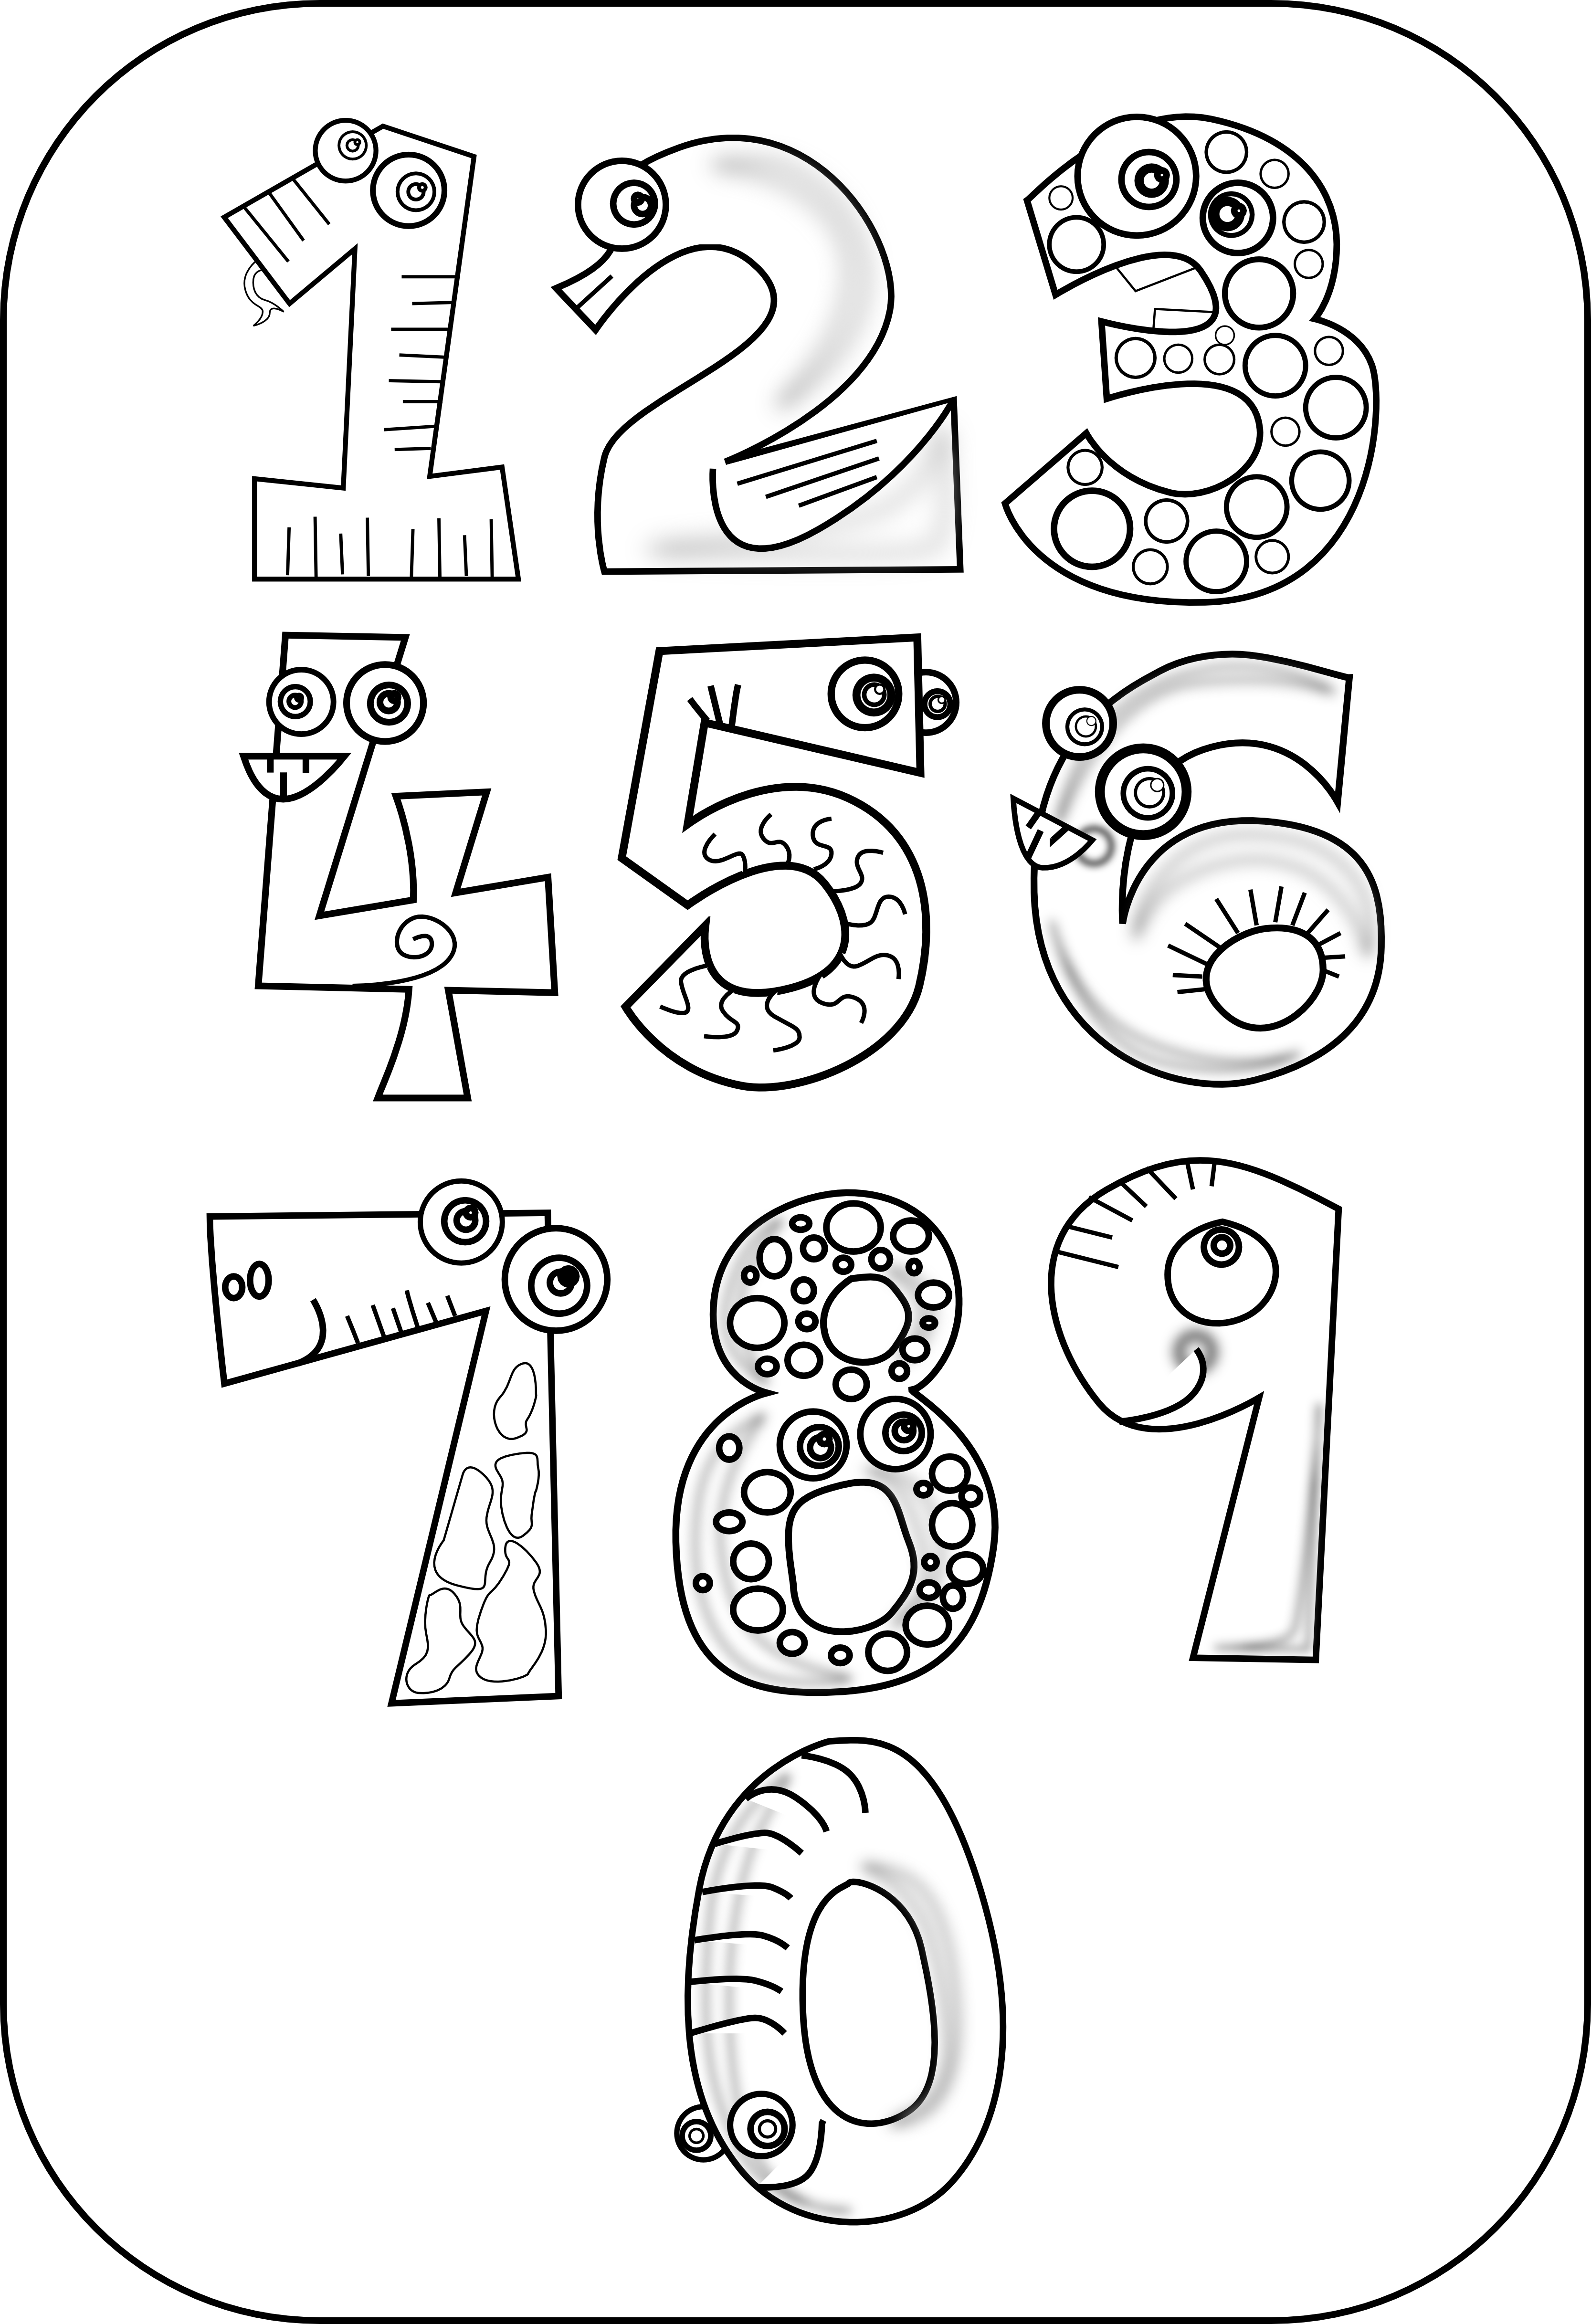 Number Clipart Black And White & Number Black And White Clip Art.